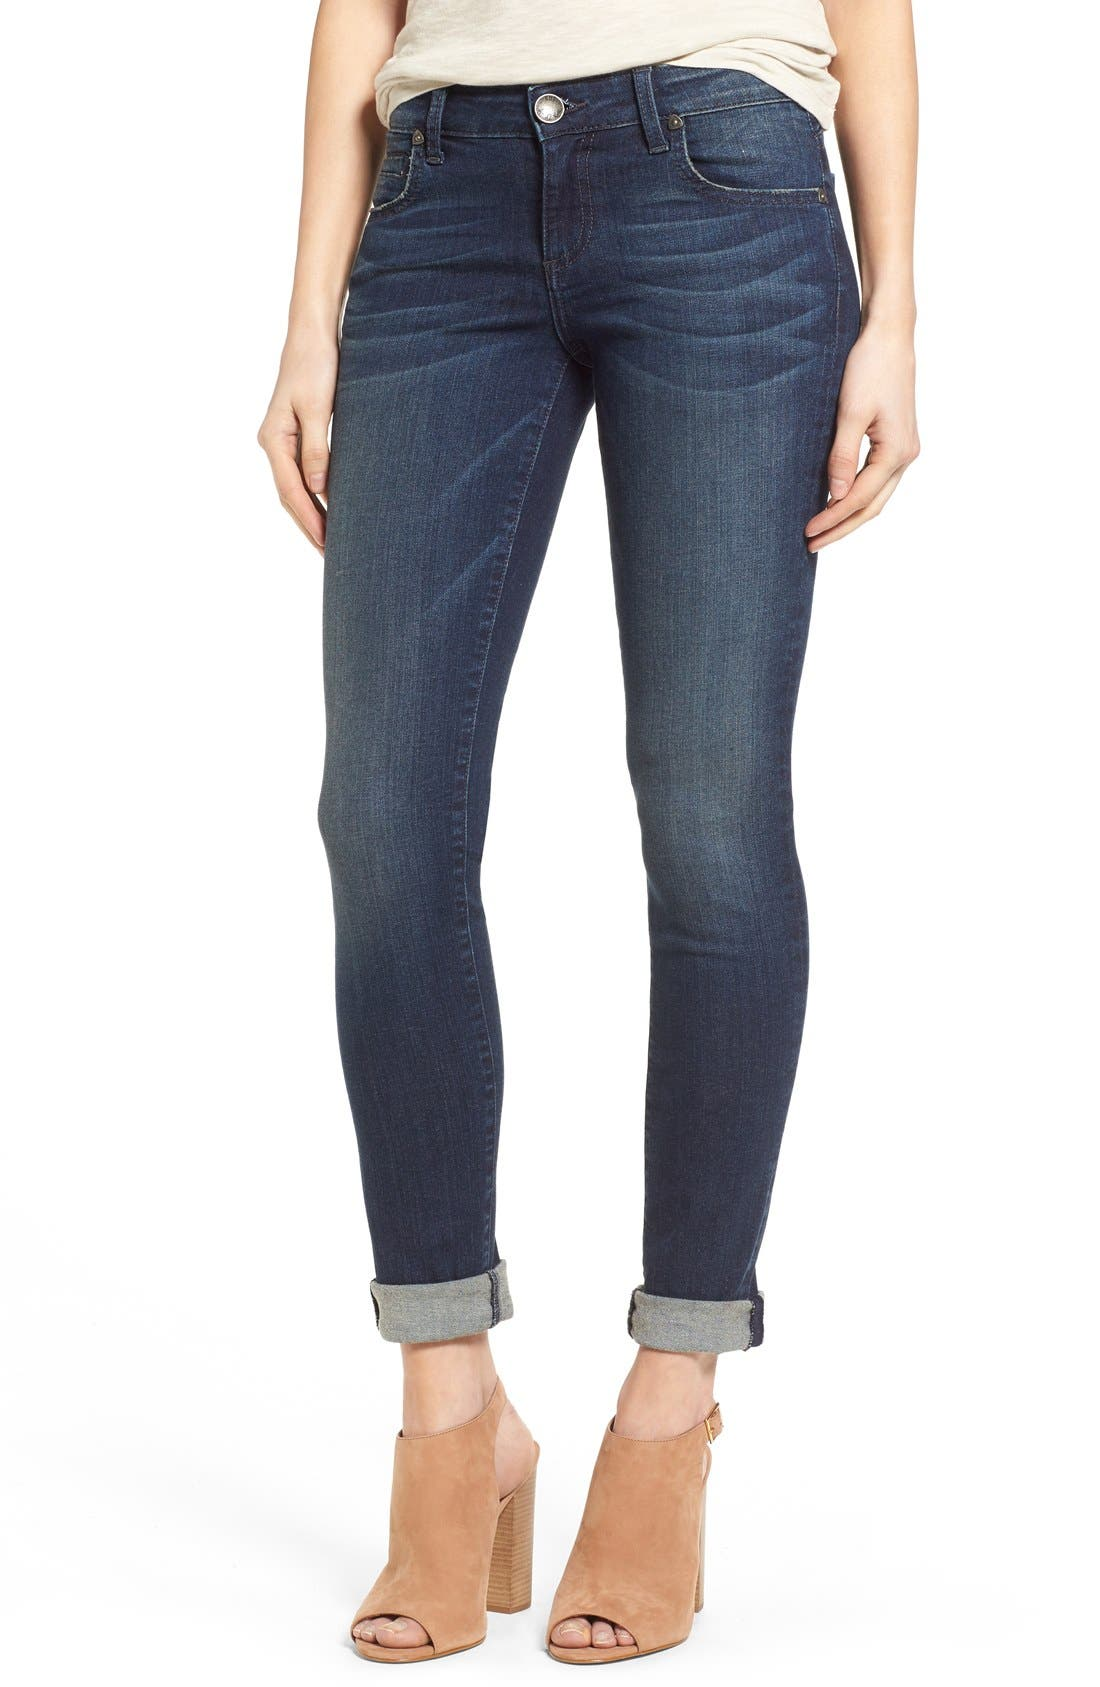 Alternate Image 1 Selected - Kut from the Kloth 'Catherine' Slim Boyfriend Jeans (Carefulness) (Regular & Petite)